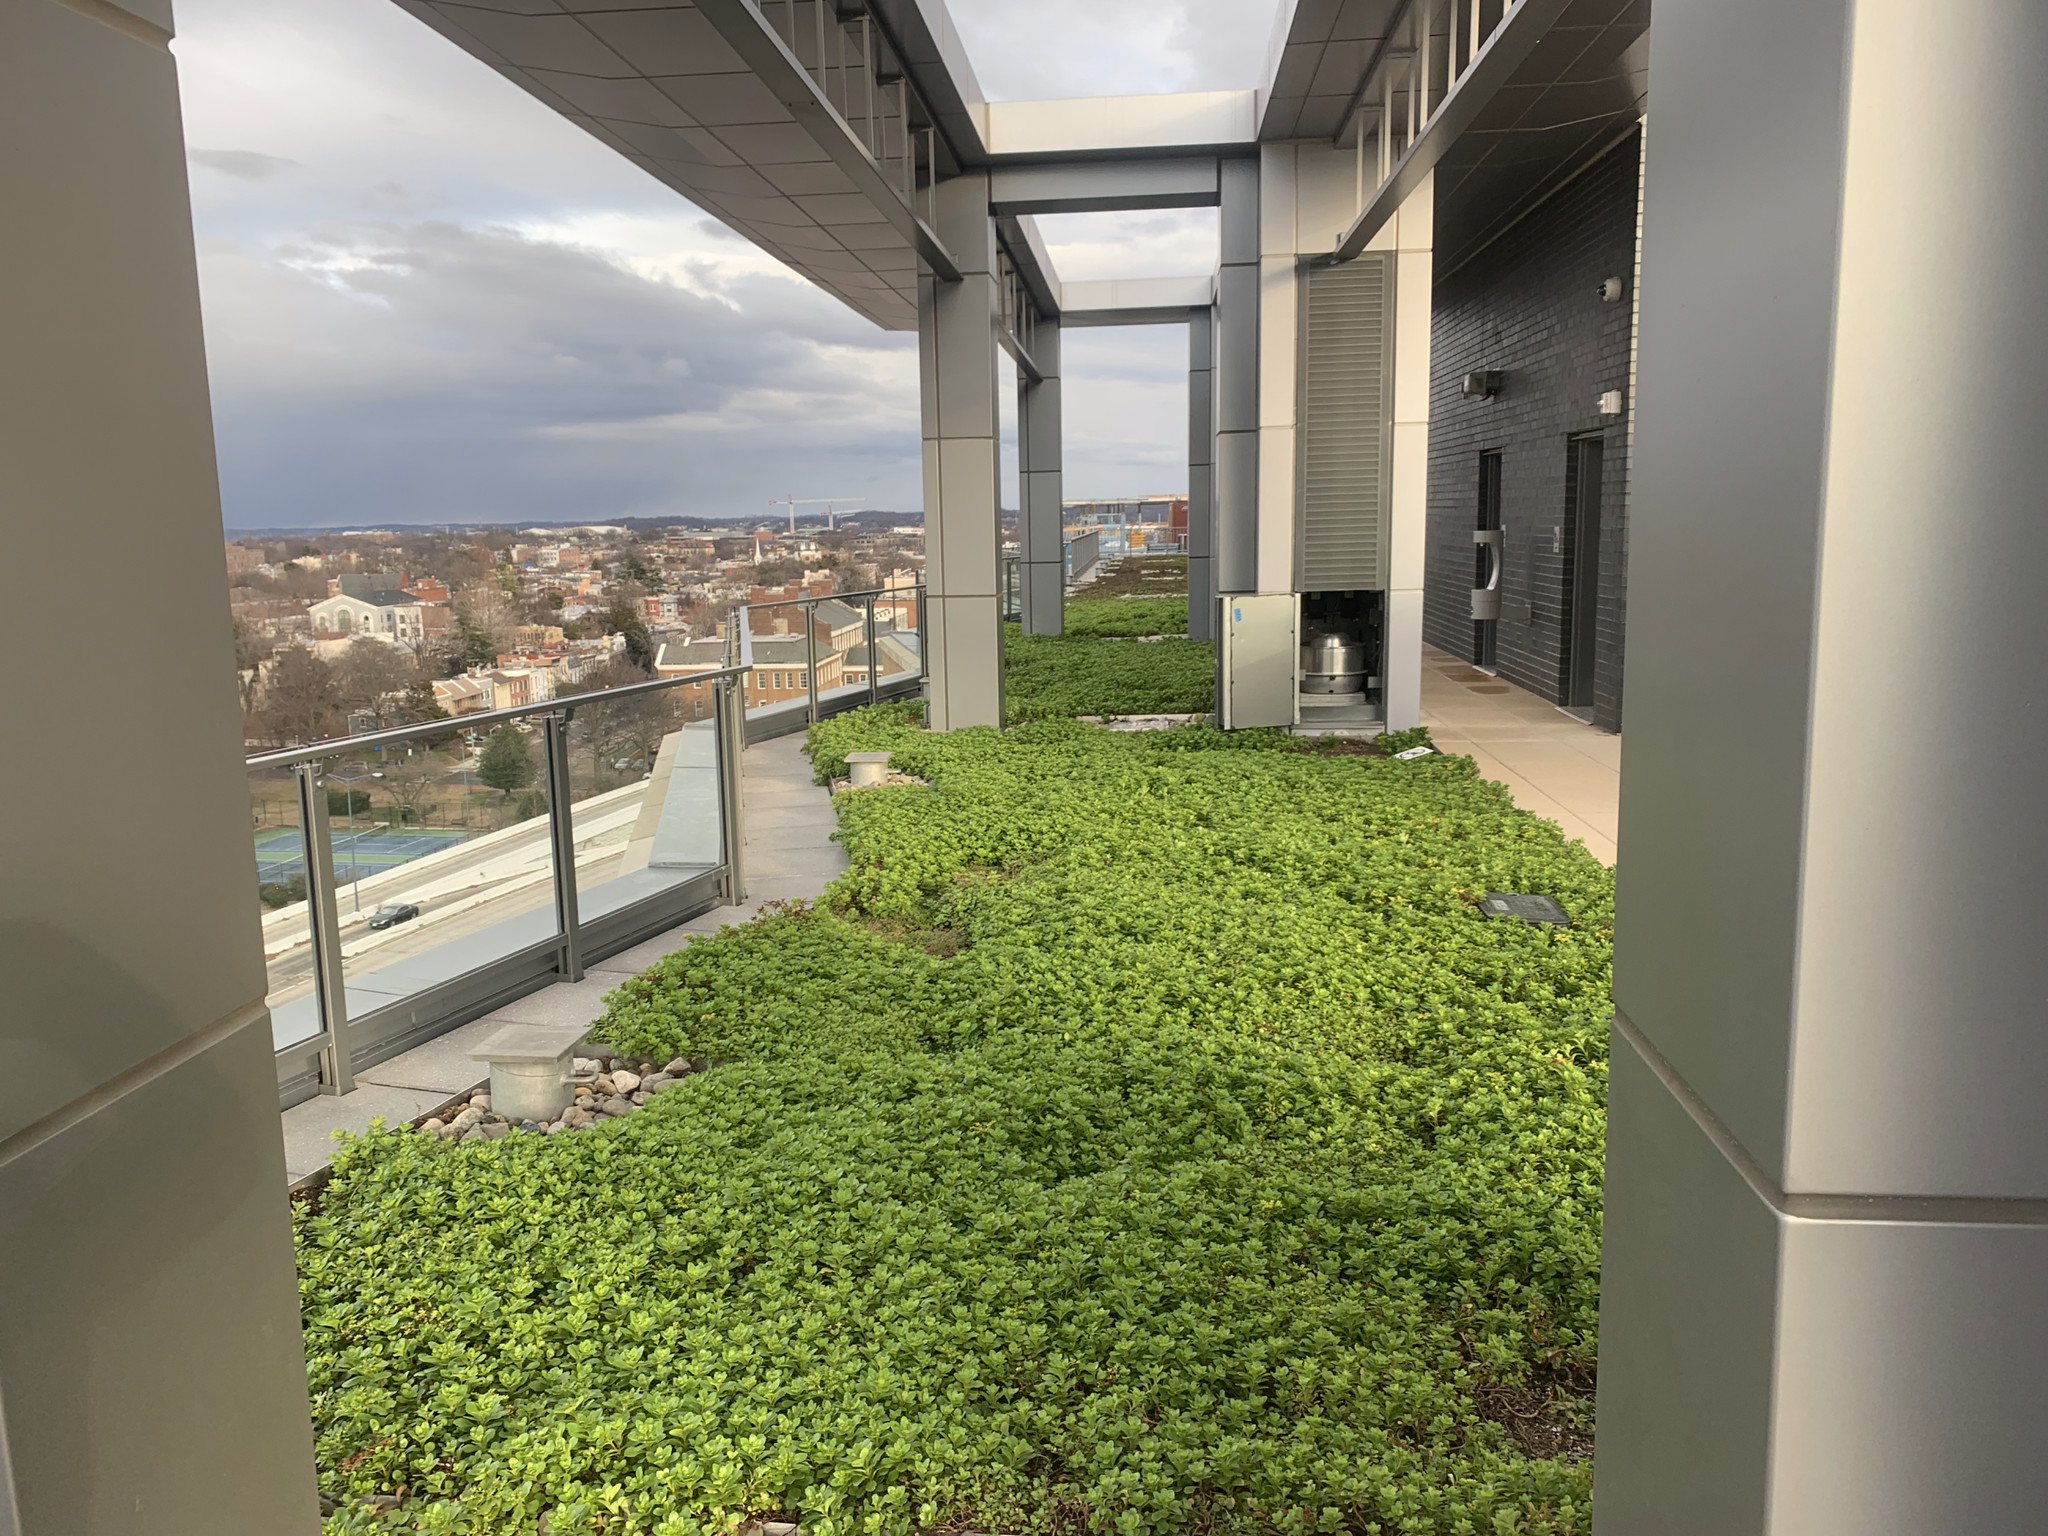 Washington-DC-Green-Roof-3.jpg